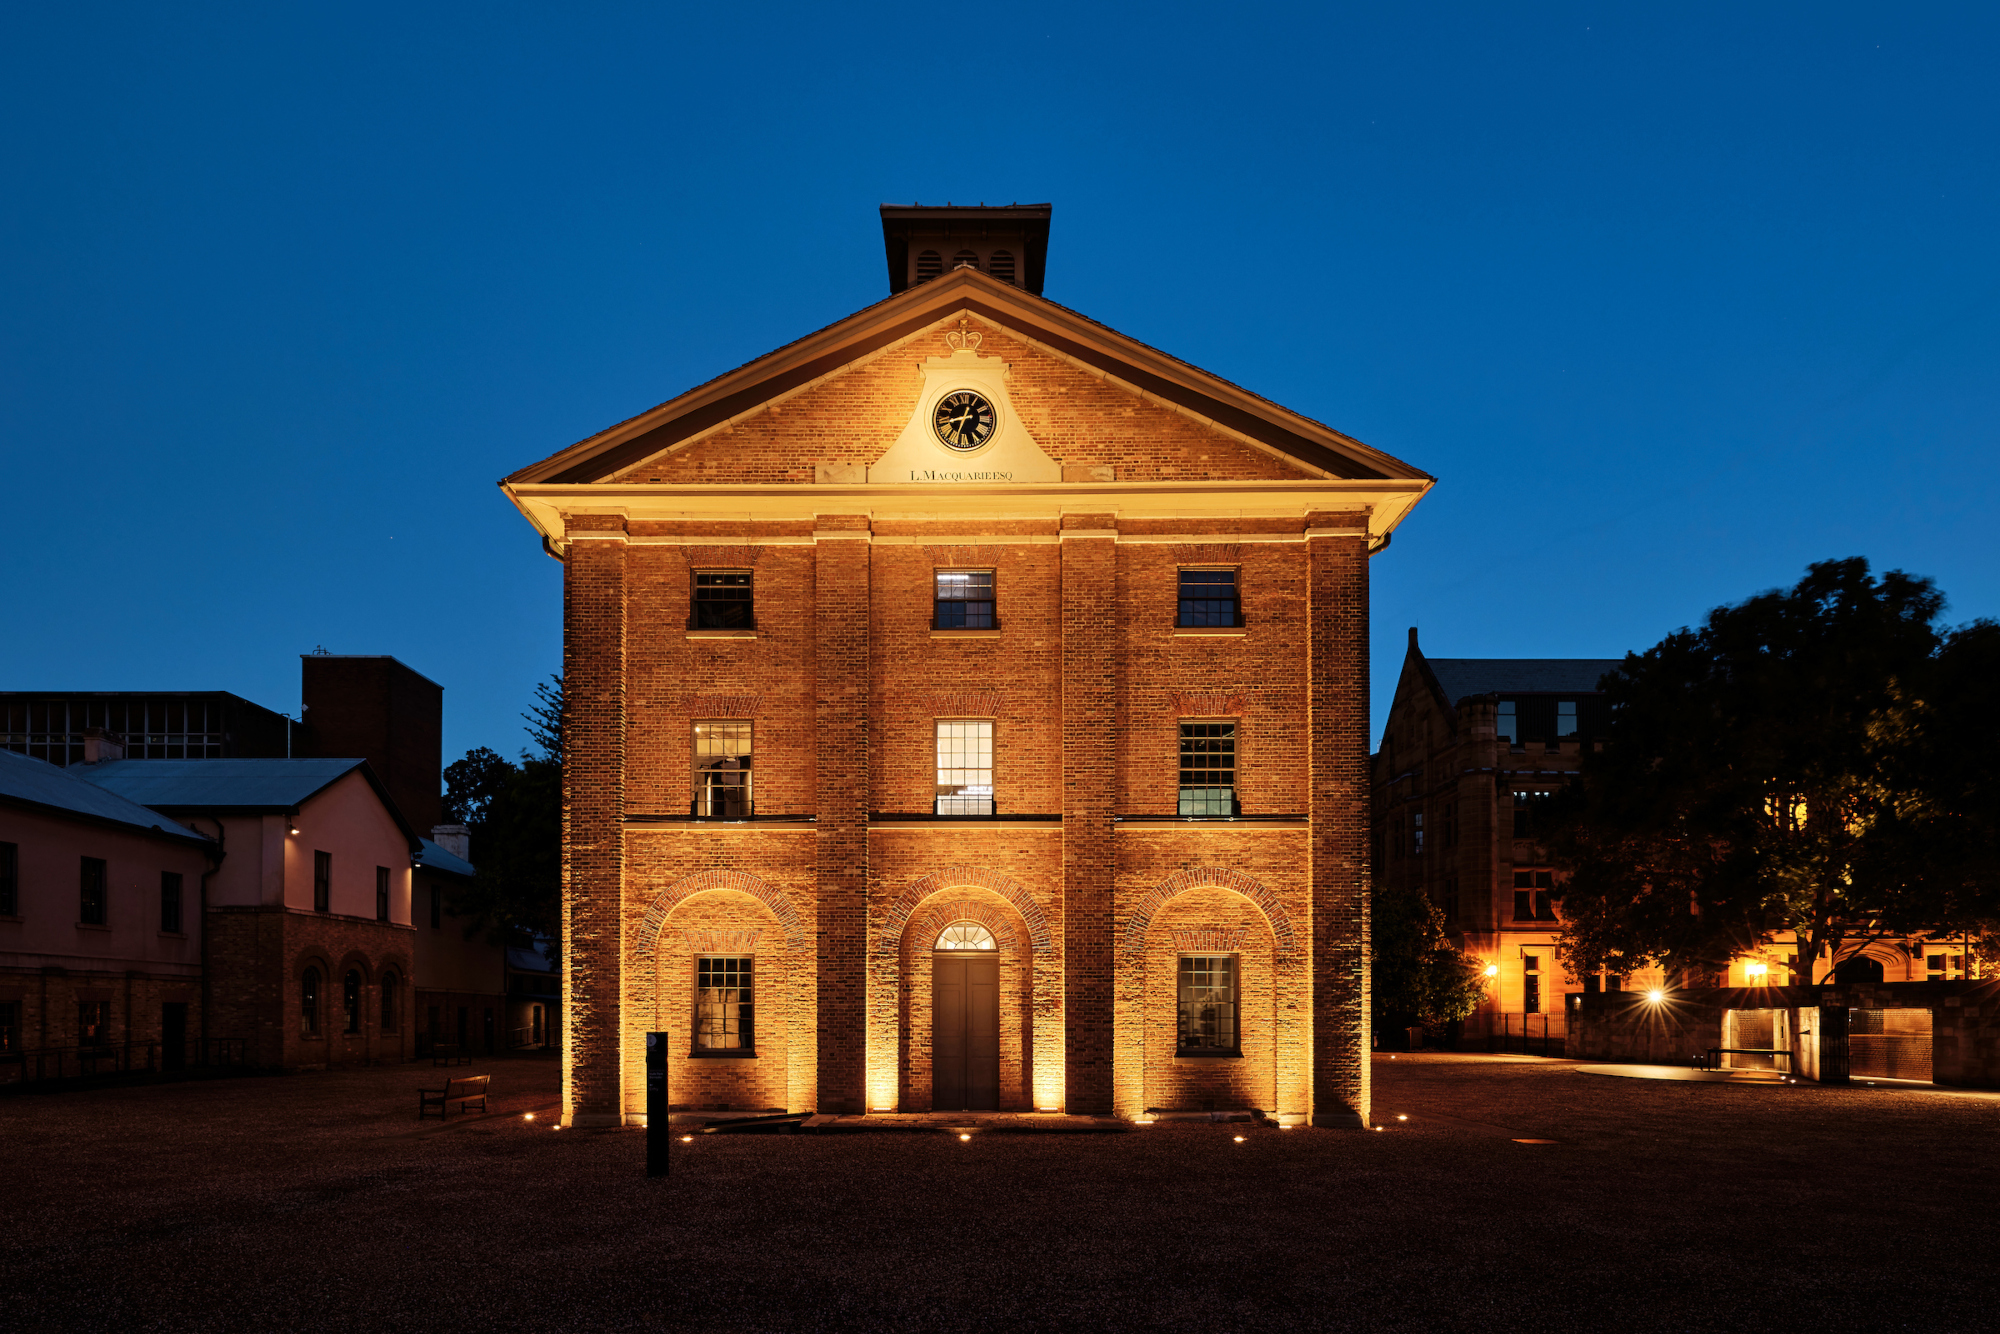 Facade of two storey brick colonial era building with lighting.